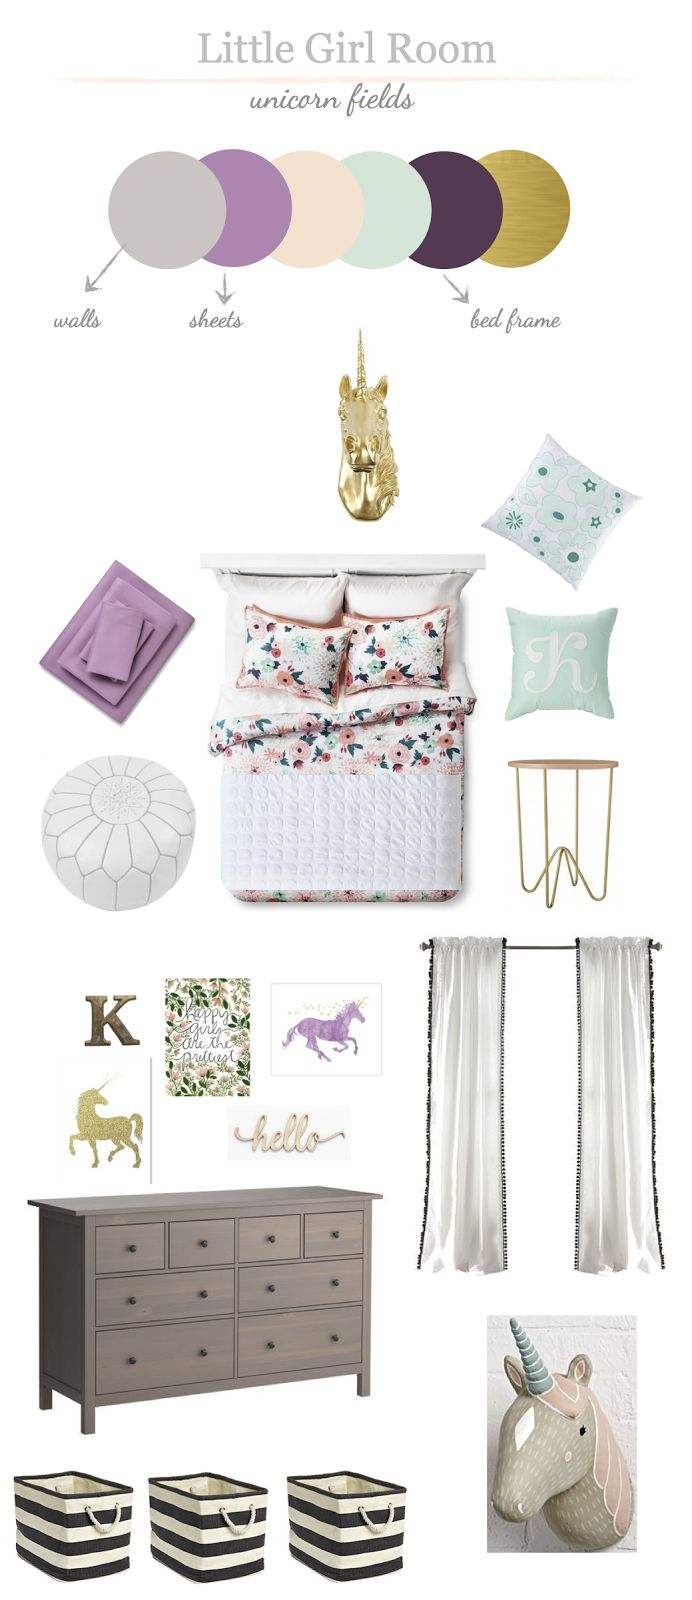 Whimsical Little Girls Room                                                                                                                                                     More